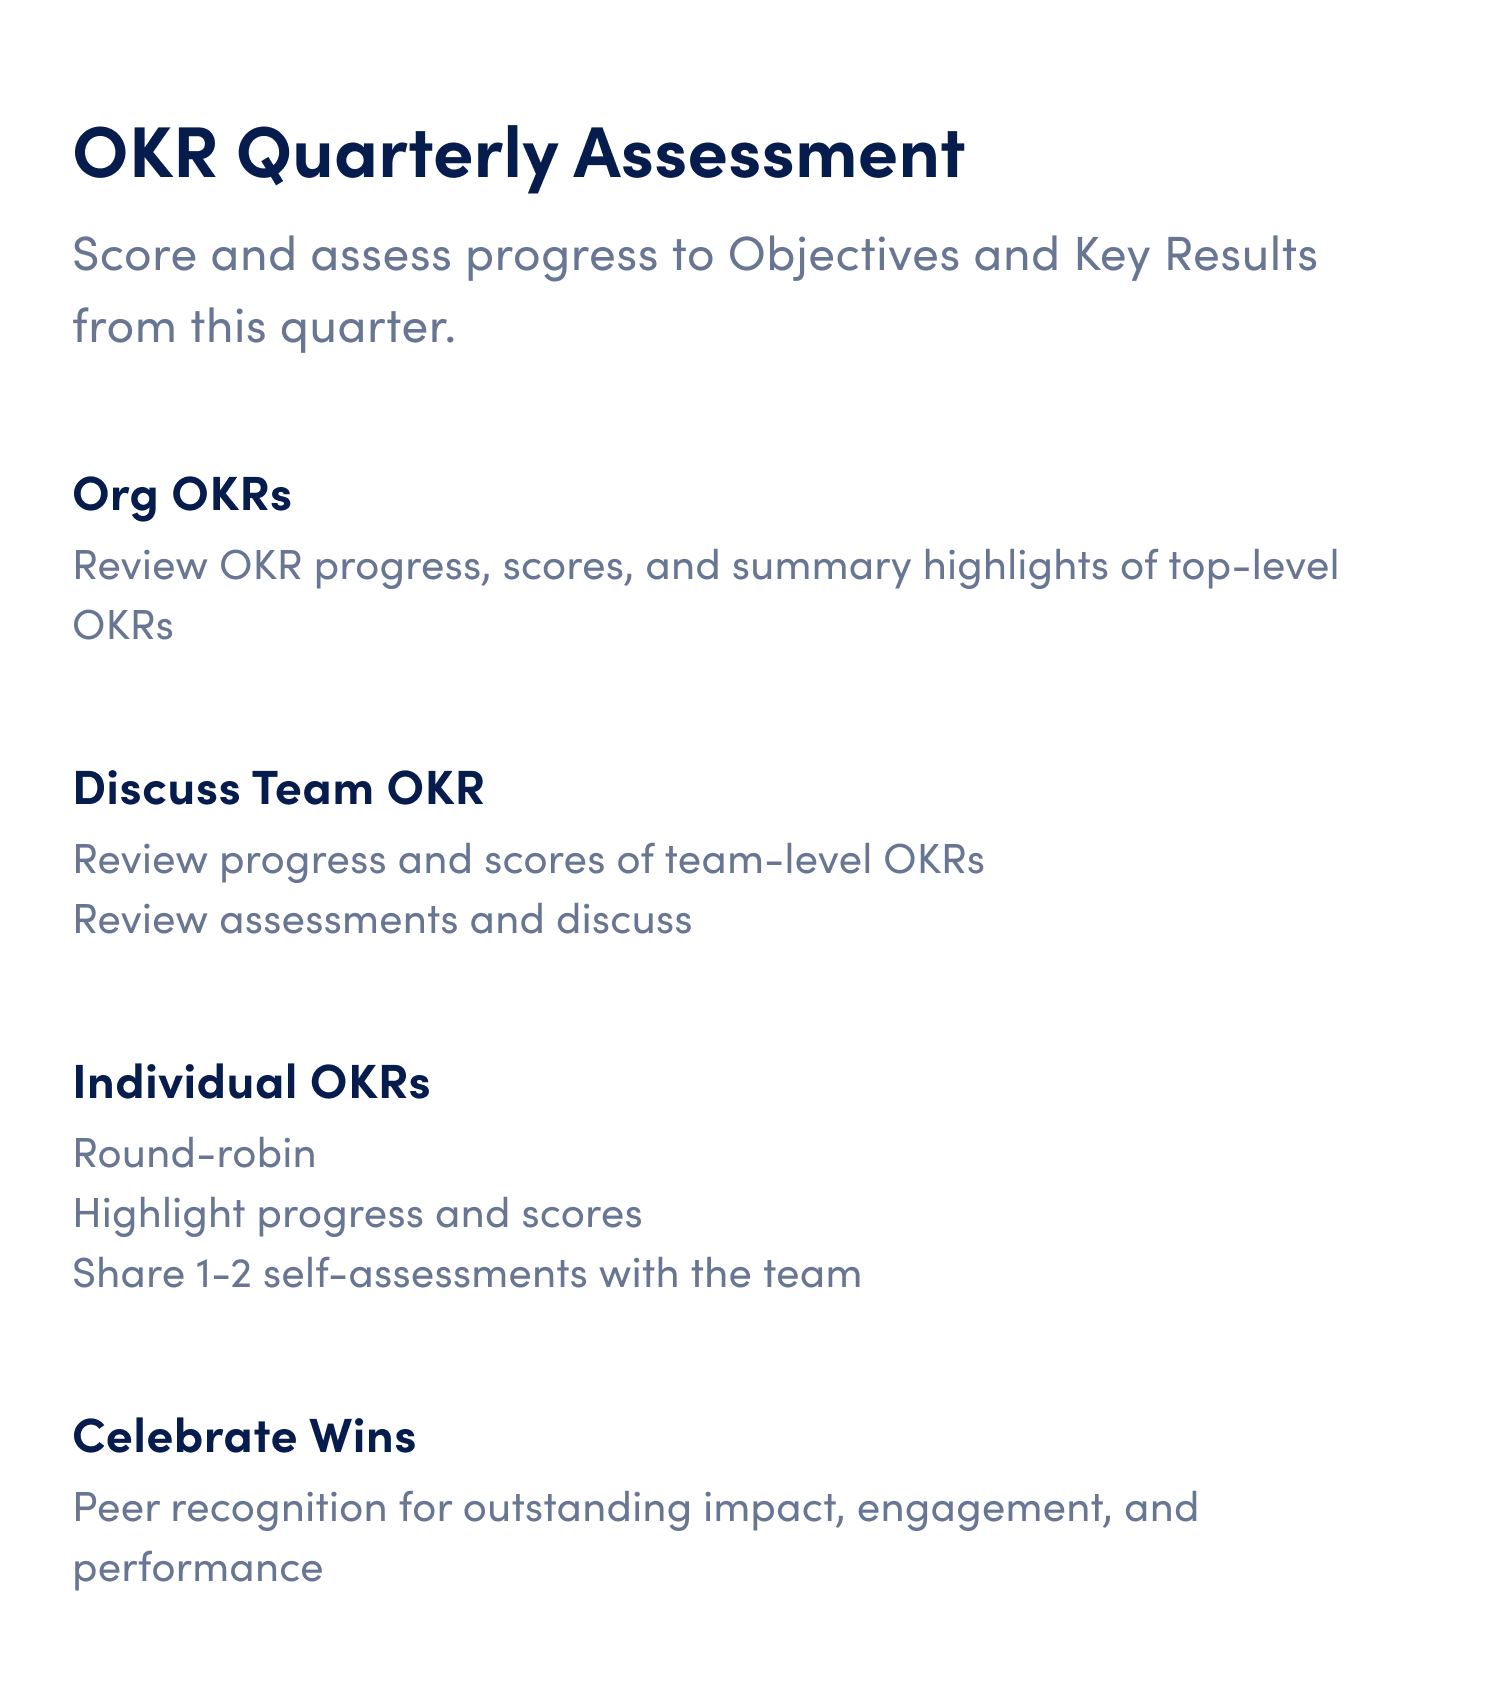 okr quarterly assessment